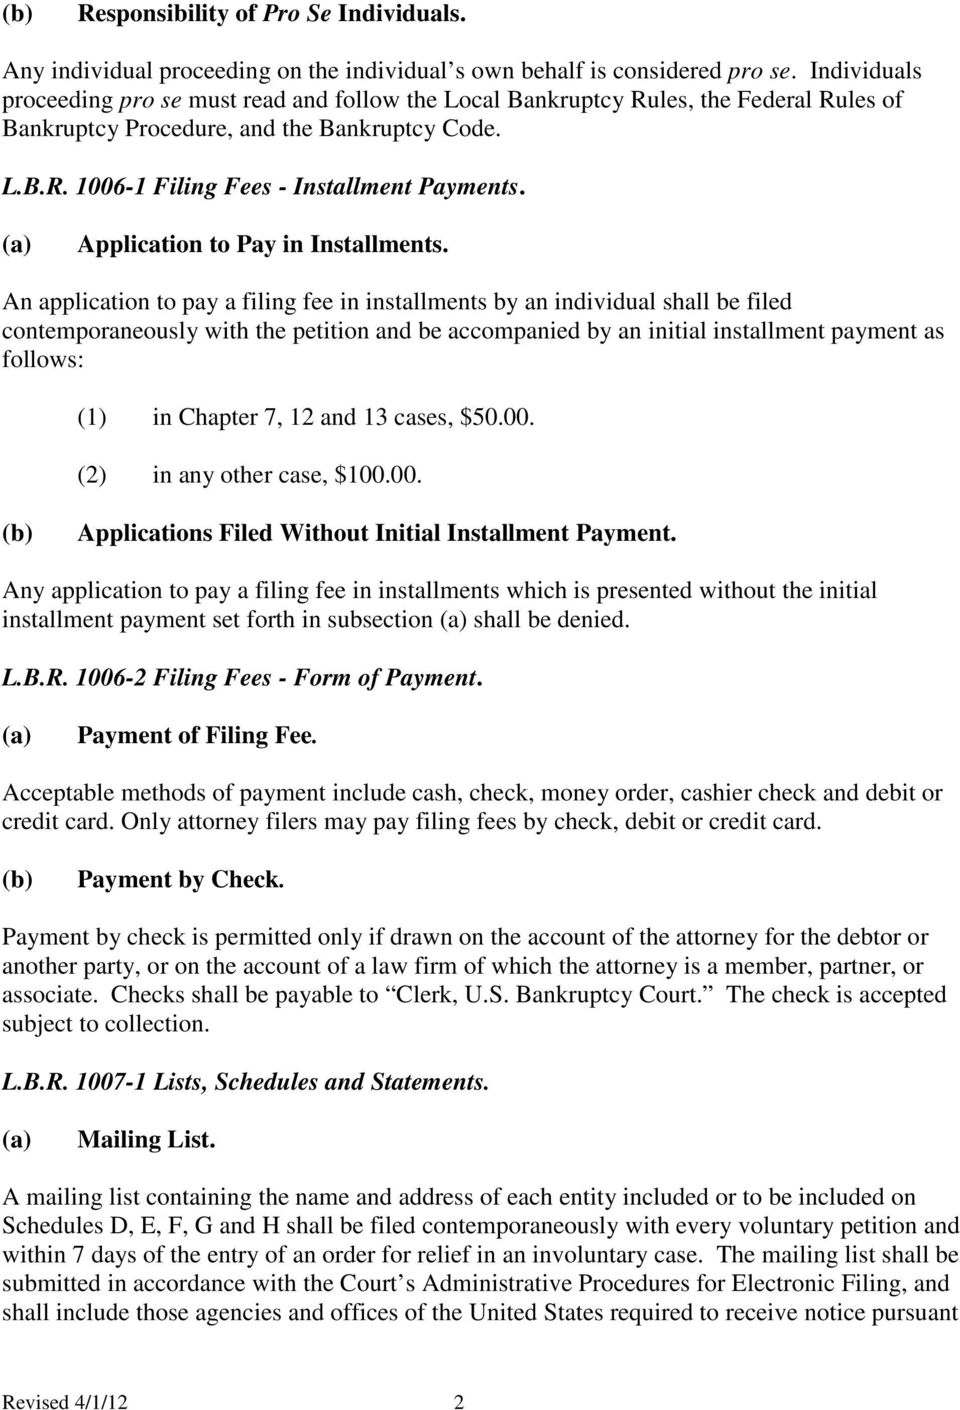 (a) Application to Pay in Installments.